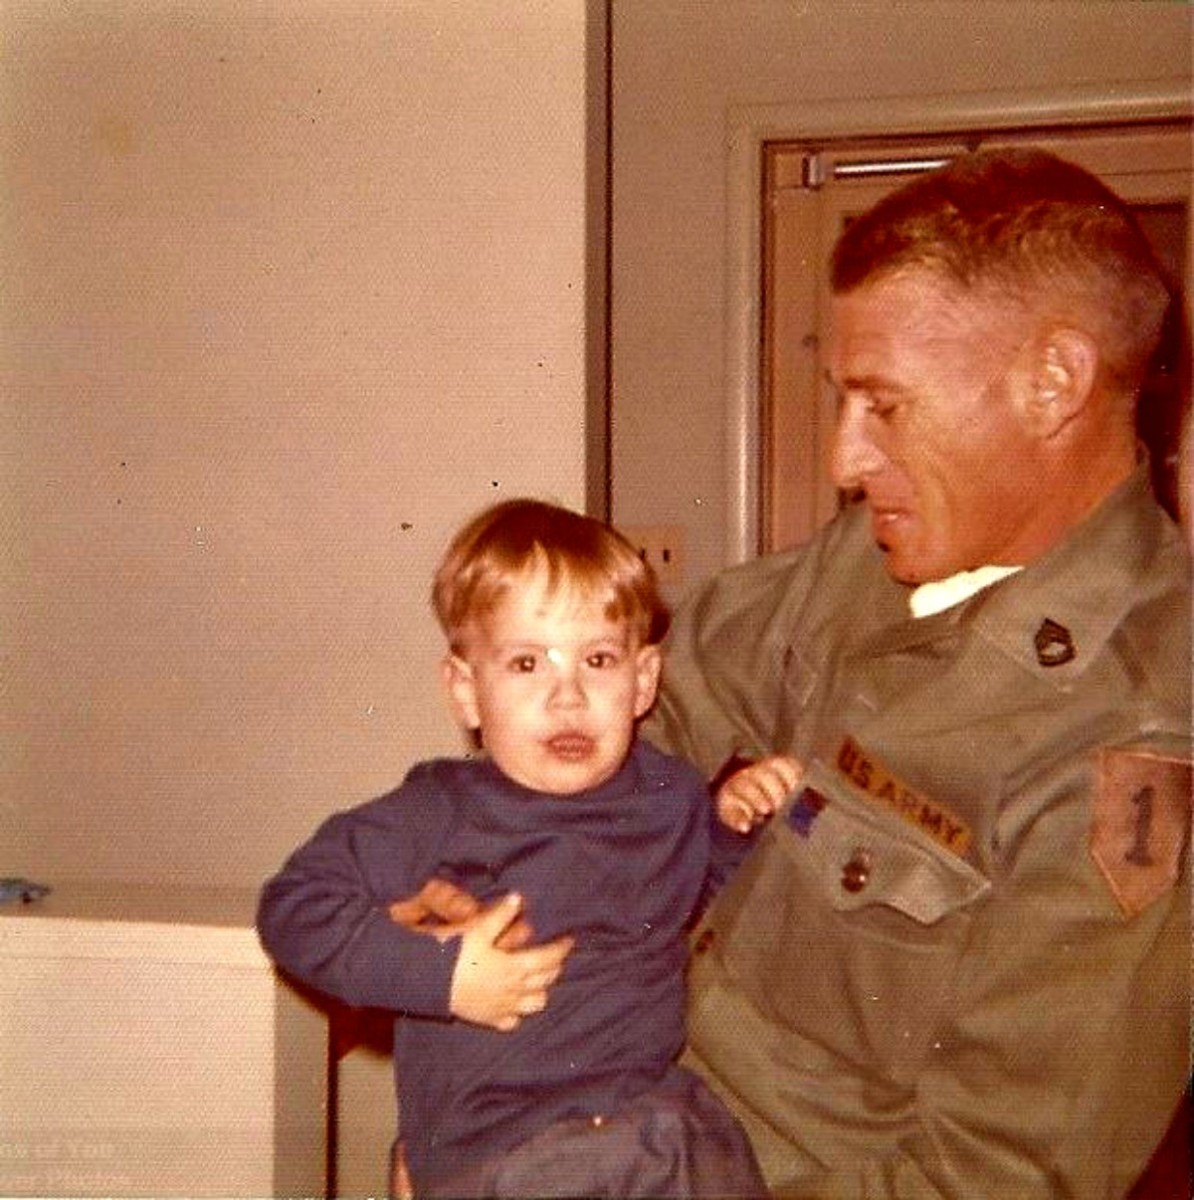 Shawn Reese with his active military father, Sgt William T. Reese